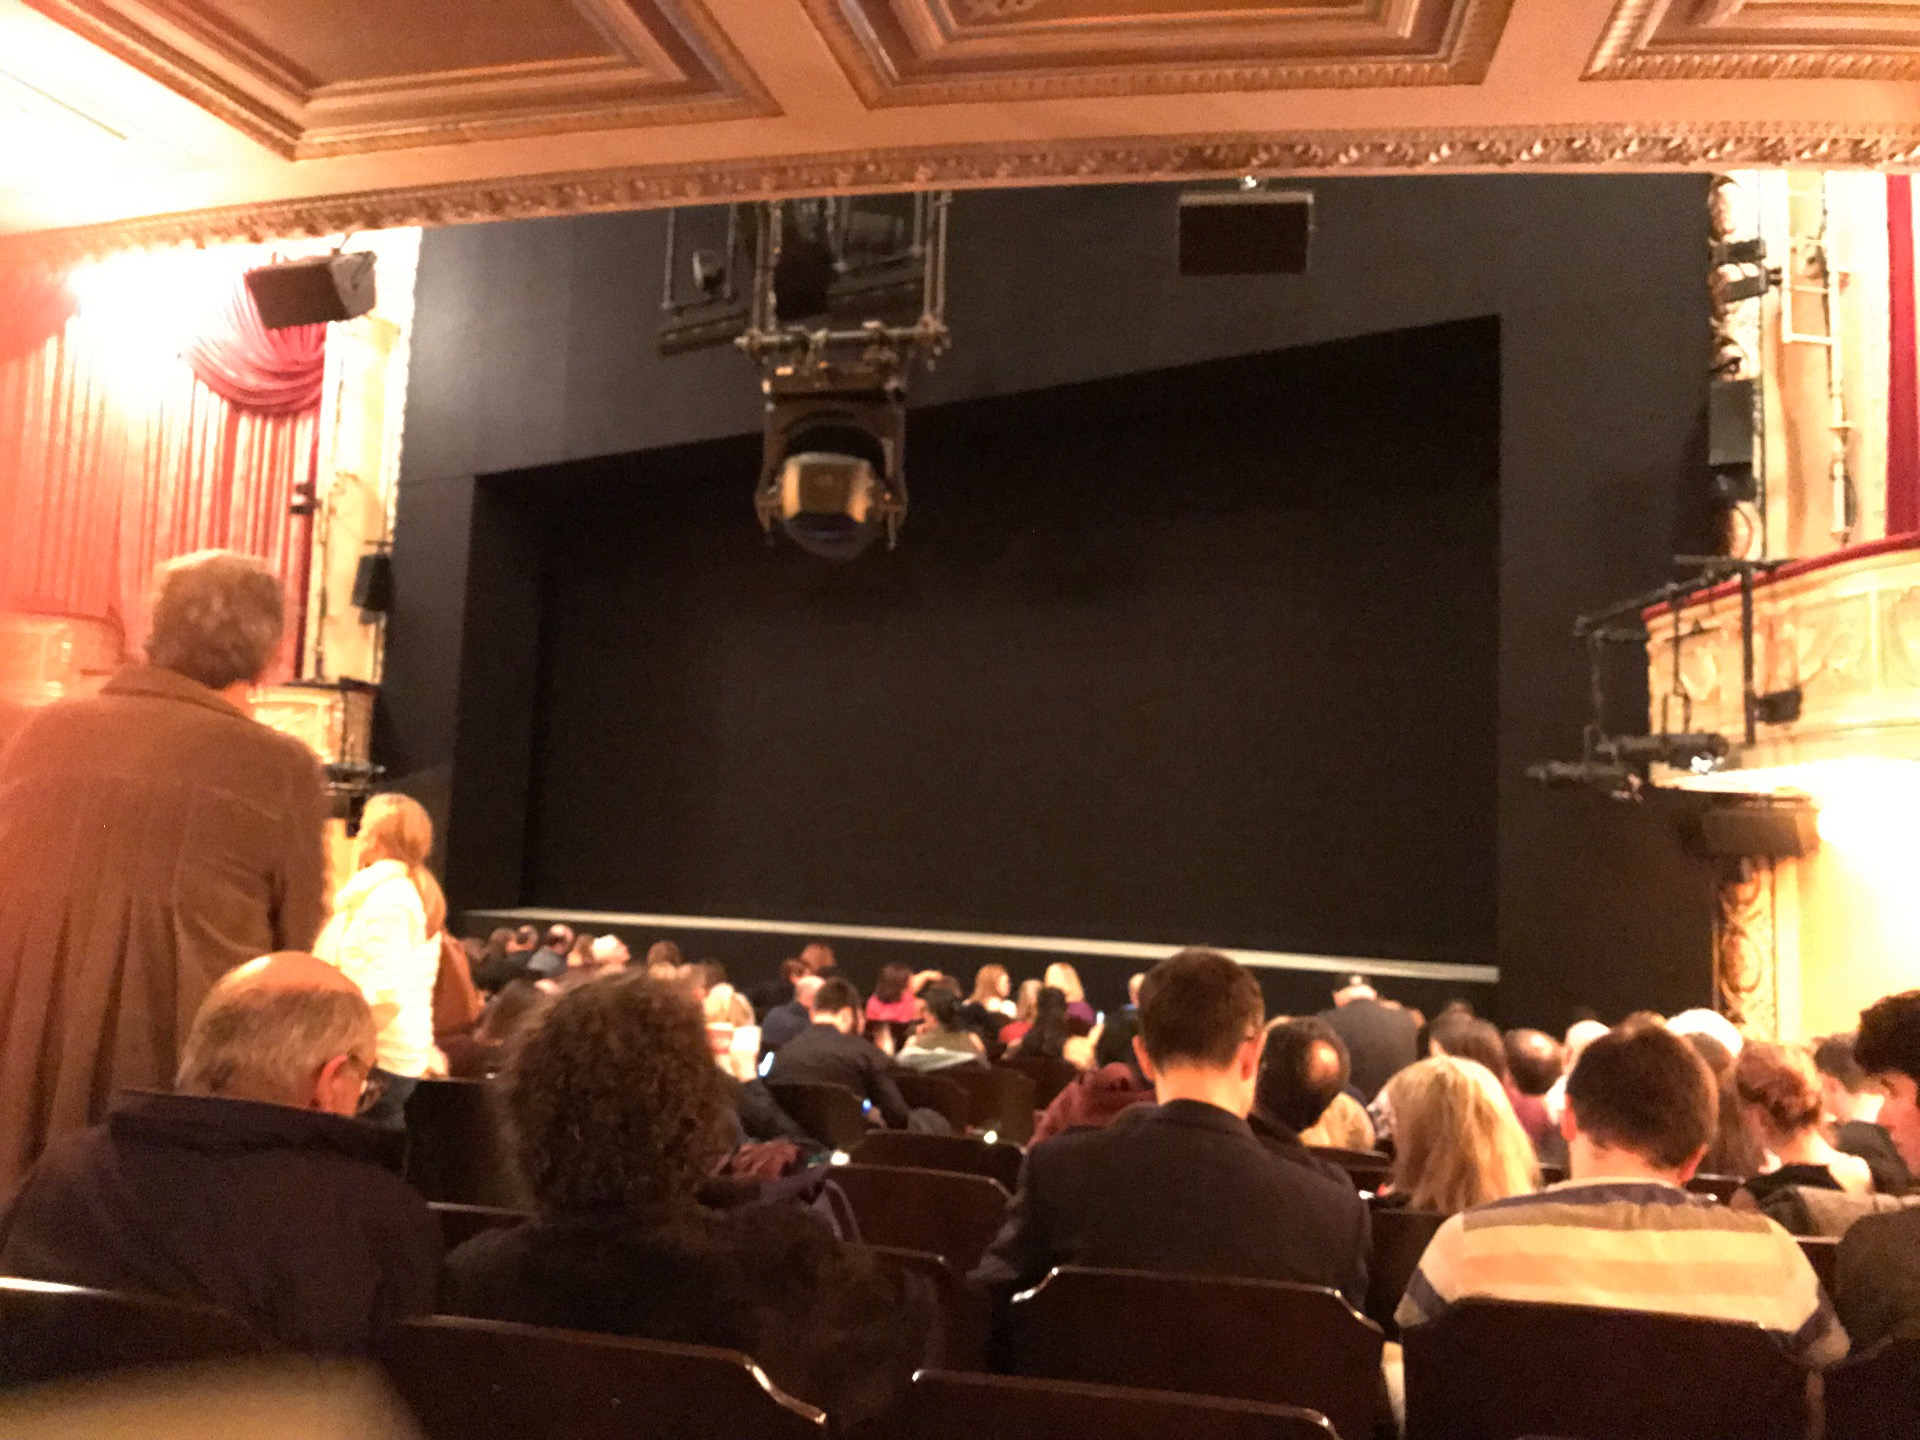 Bernard B. Jacobs Theatre Section Orchestra L Row N Seat 14